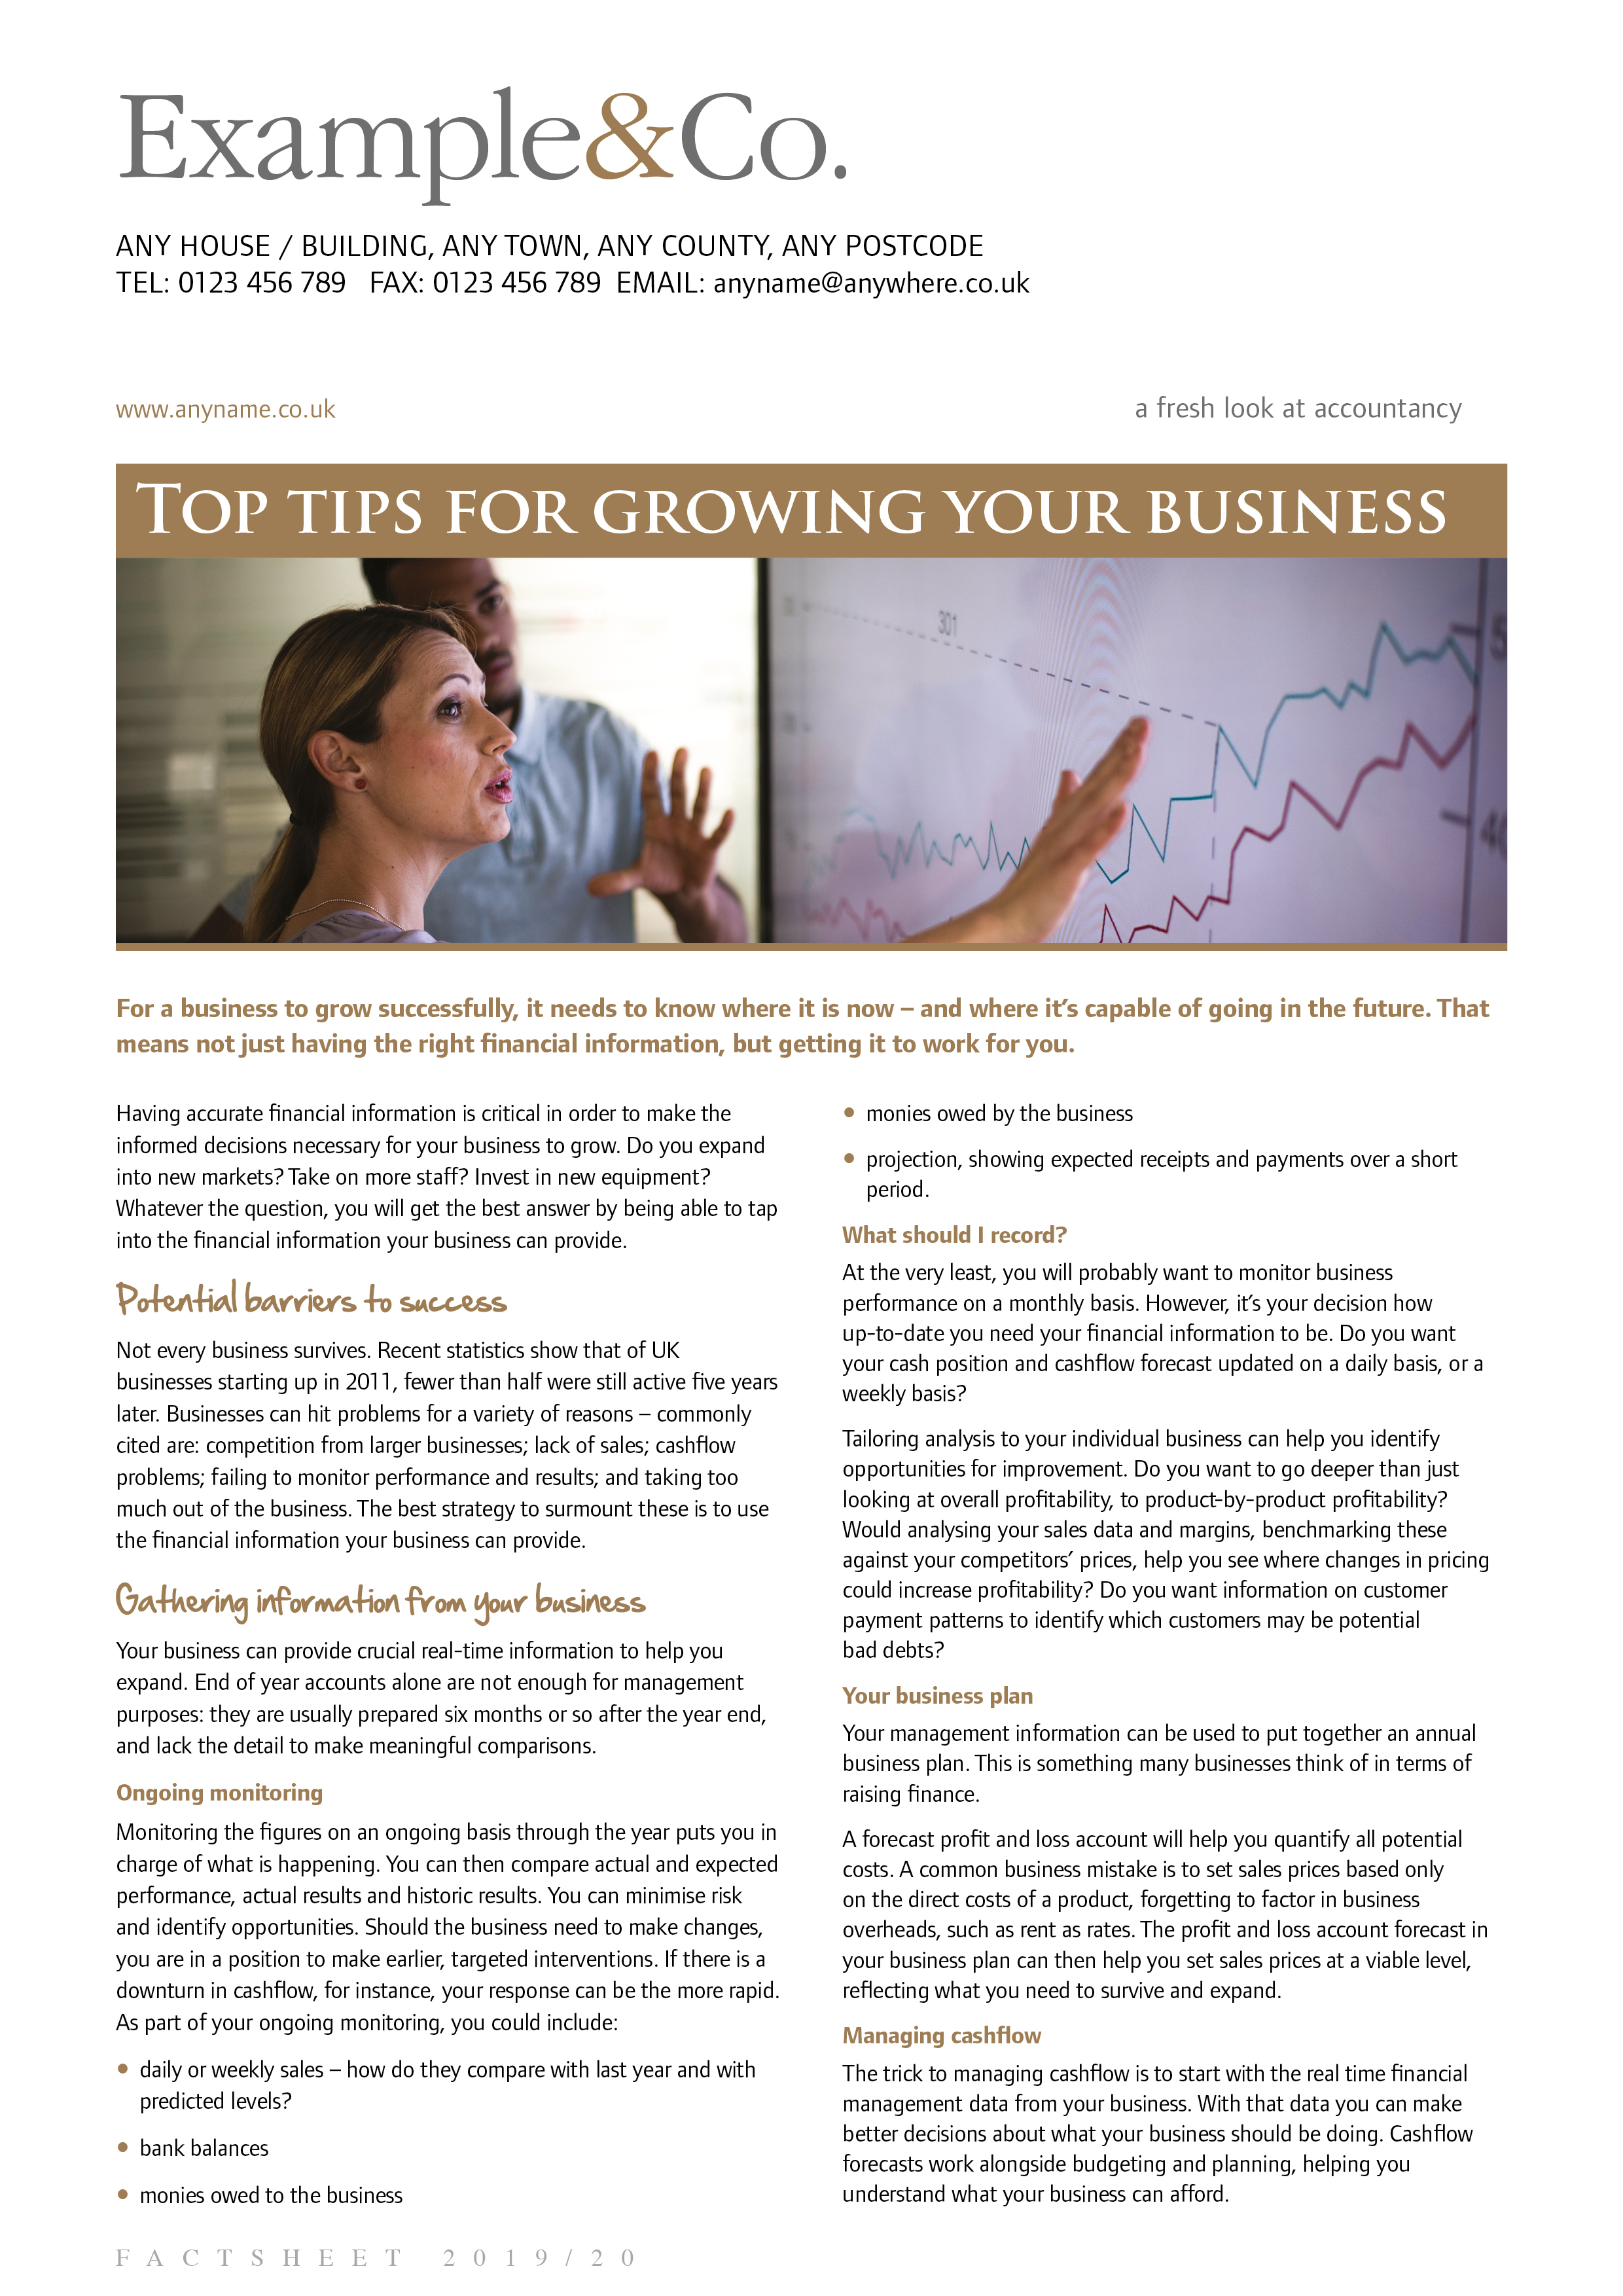 Top tips for growing your business